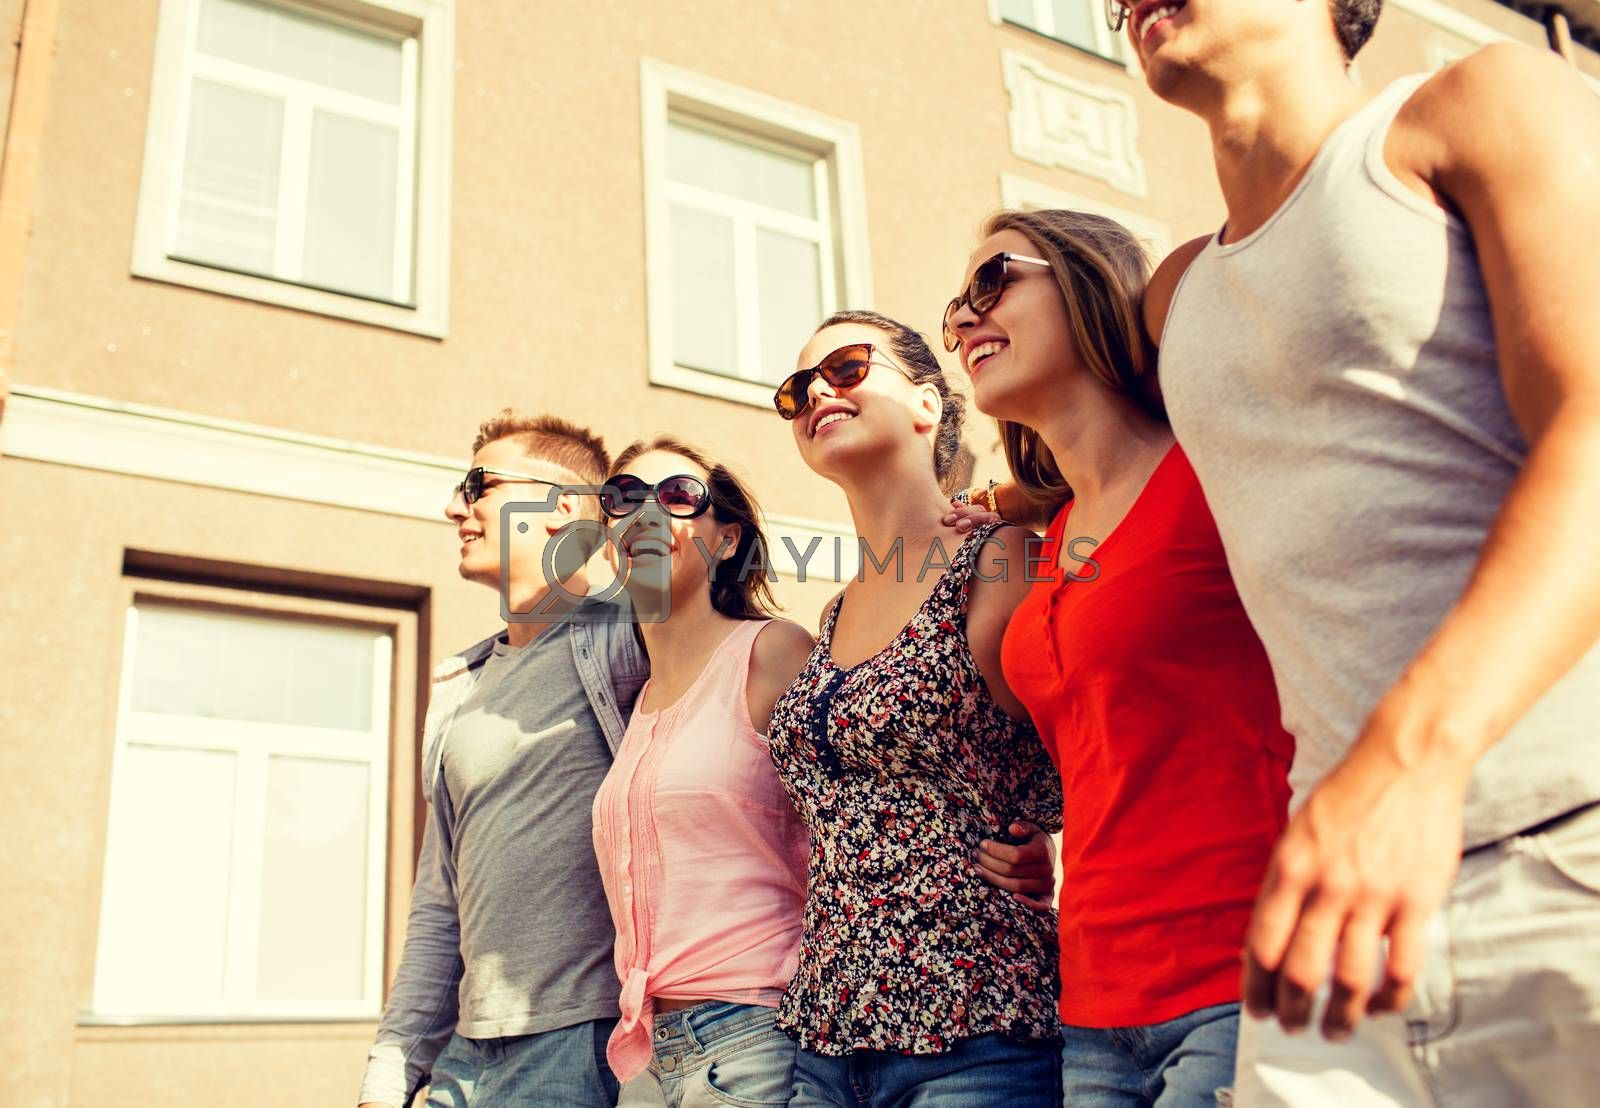 friendship, leisure, summer, gesturer and people concept - group of smiling friends walking in city